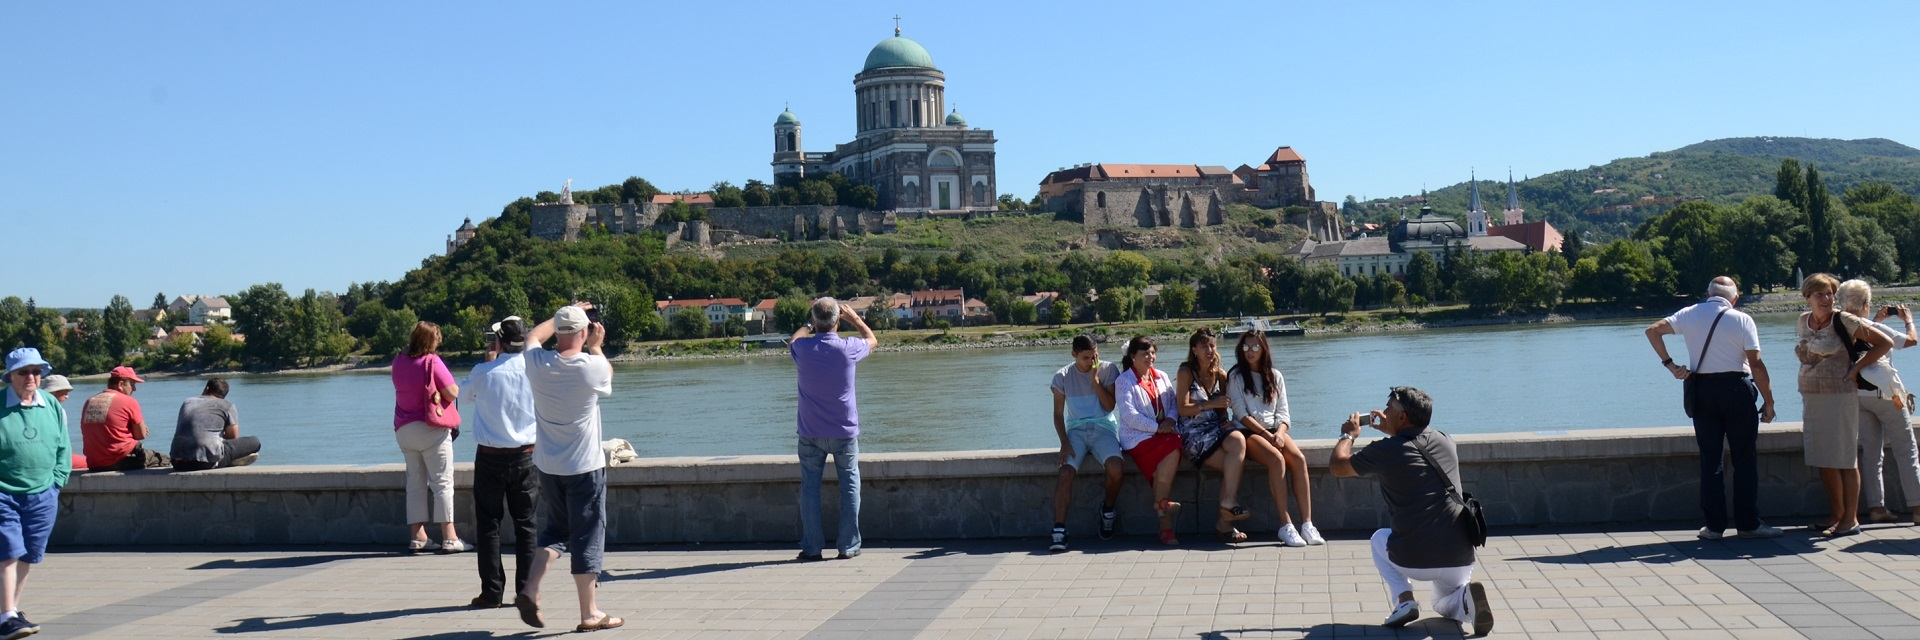 full-day-tours-out-of-budapest-live-guide-cityrama